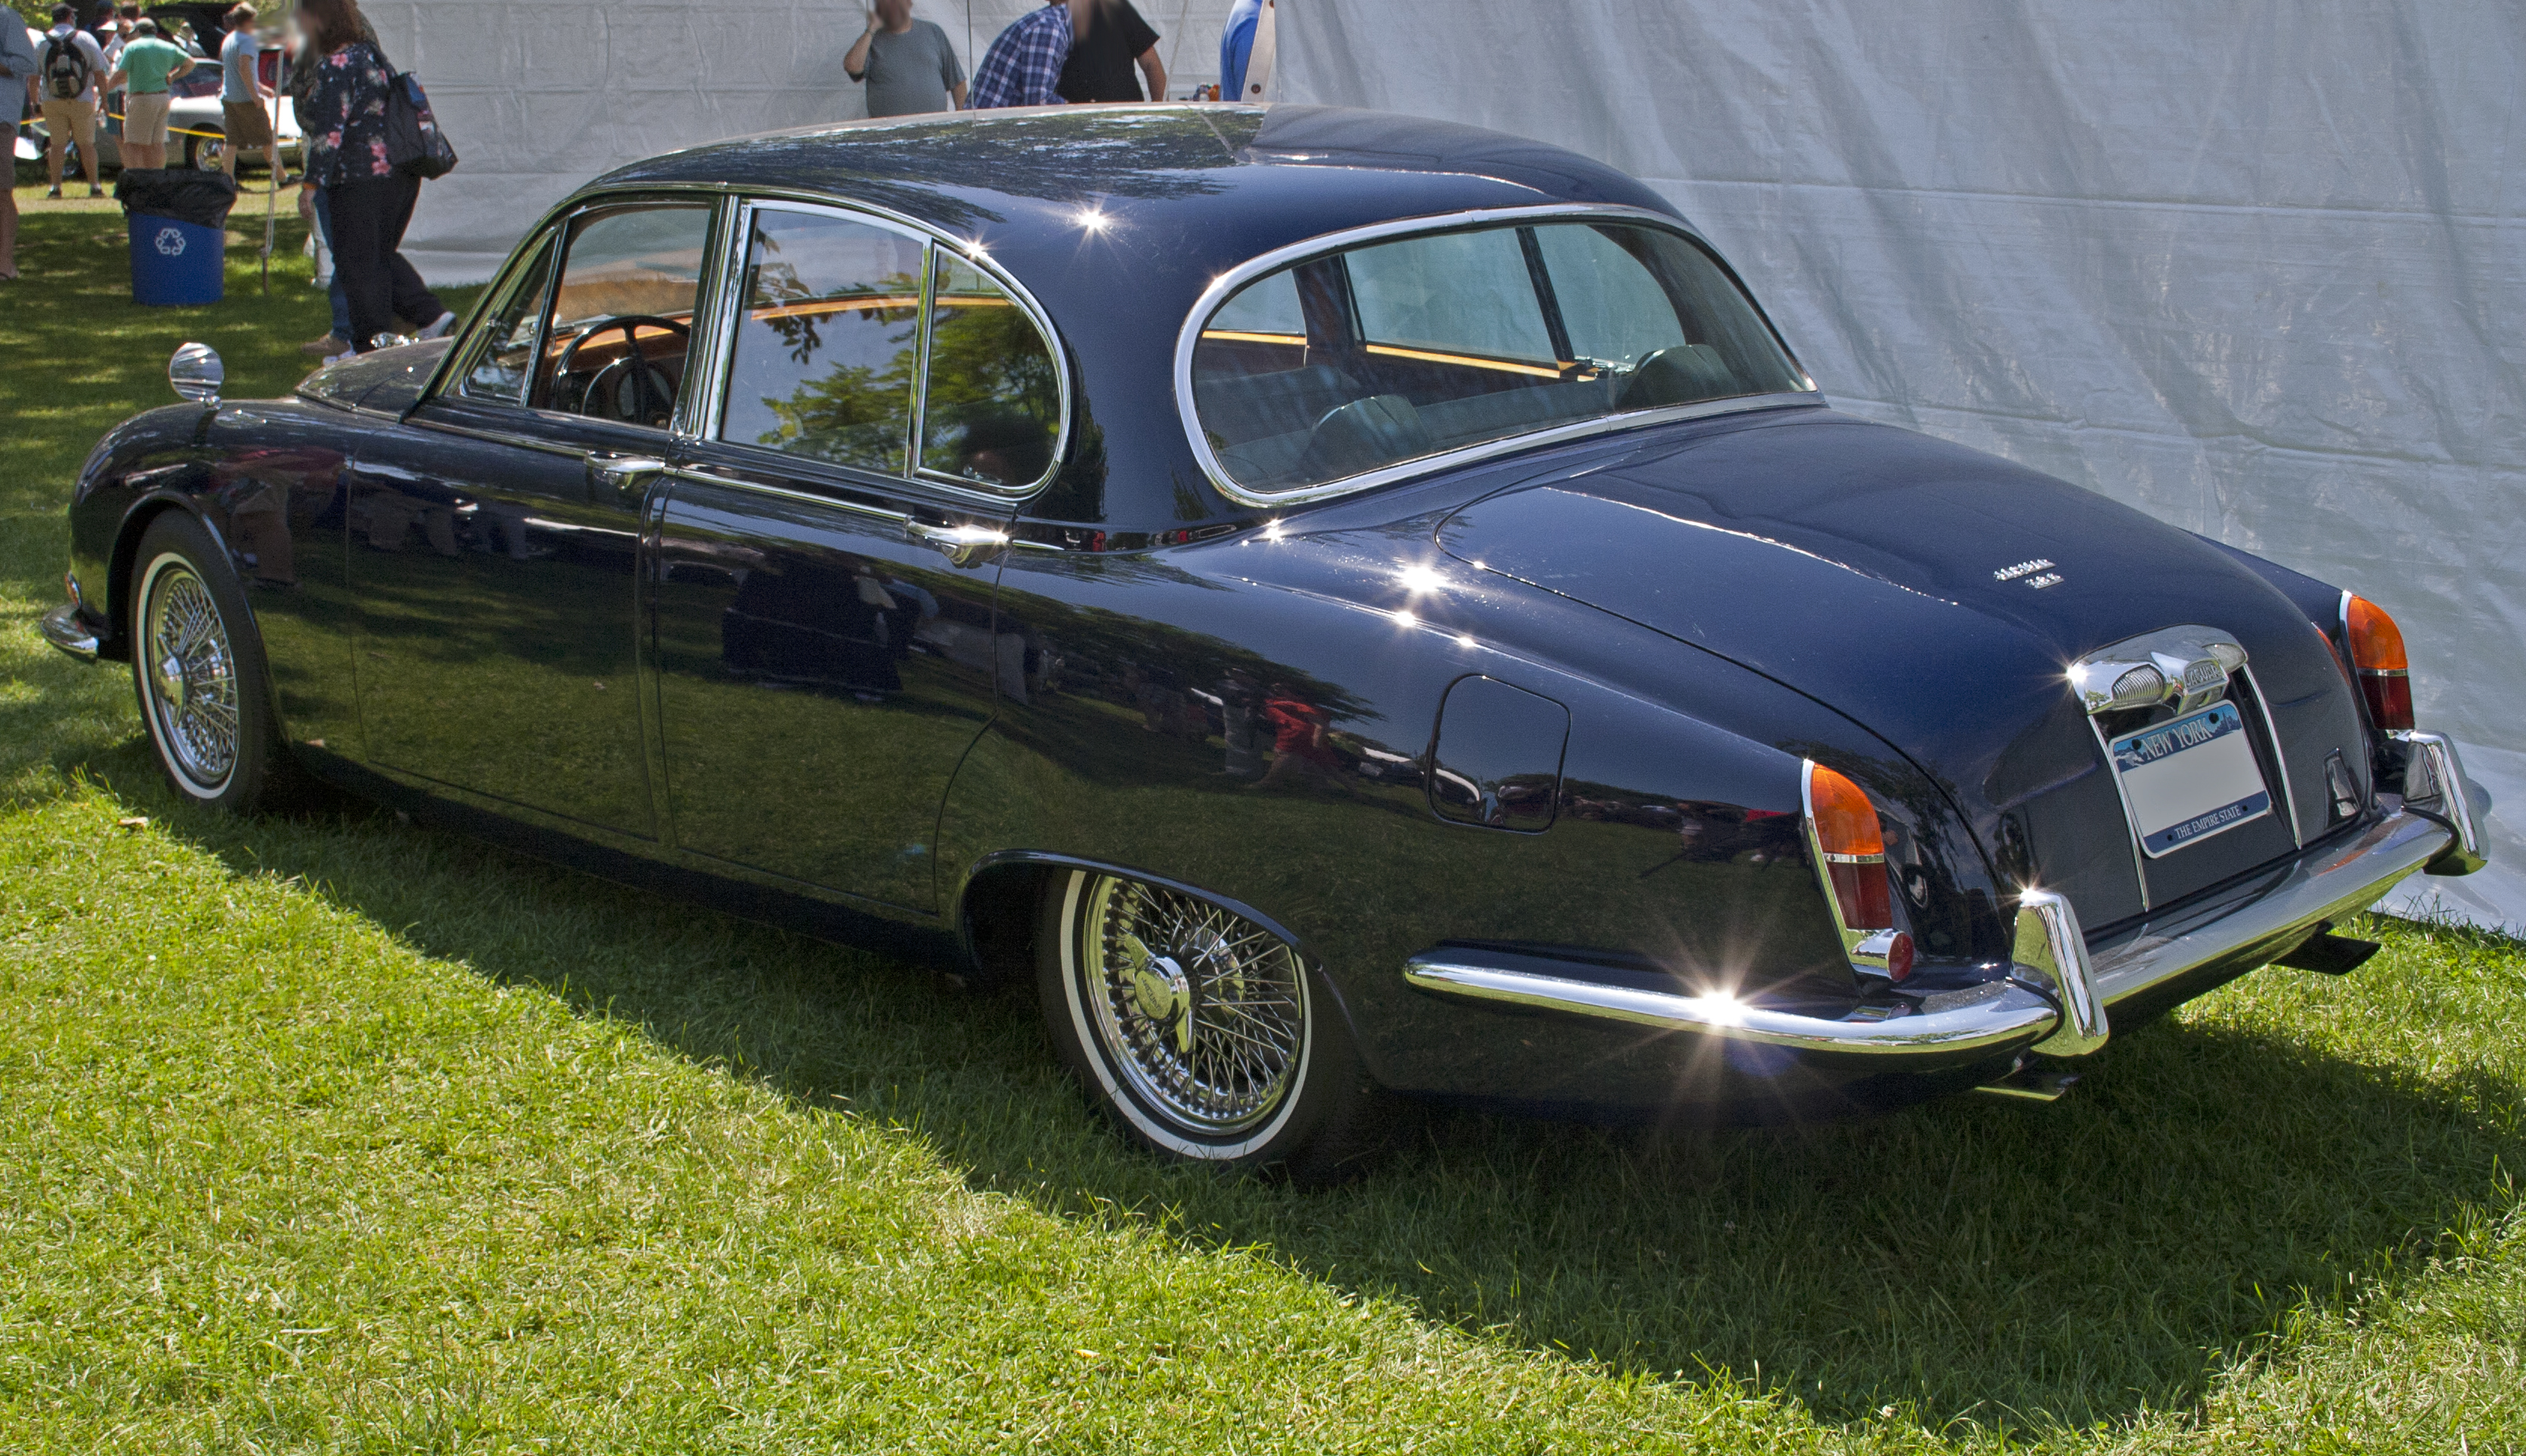 file:1965 jaguar 3.8s - wikimedia commons